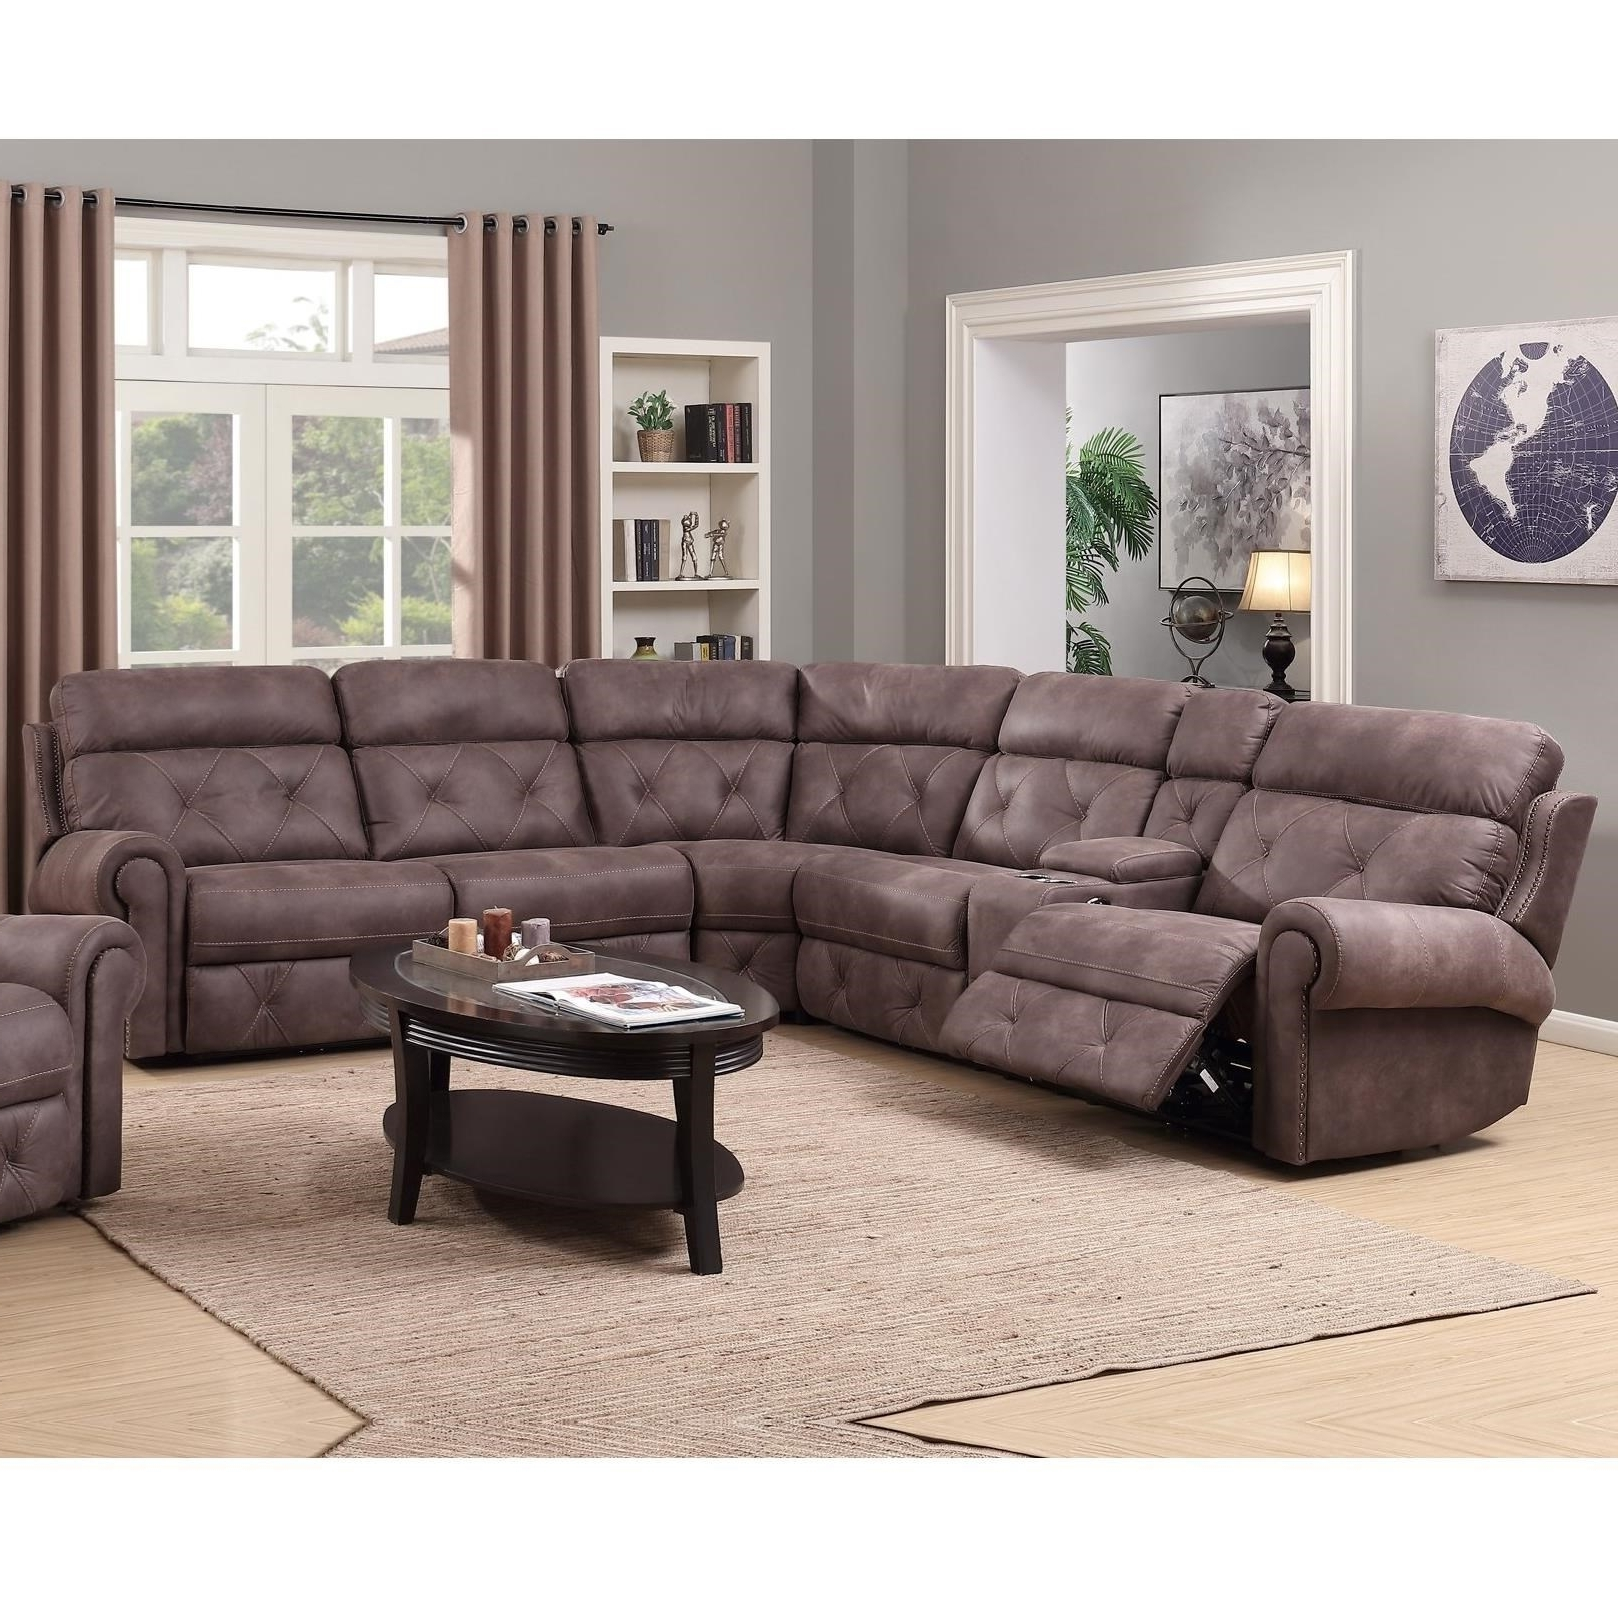 Happy Leather Company 1378 Power Reclining Sectional With Console For Widely Used Sectional Sofas At Birmingham Al (View 7 of 15)